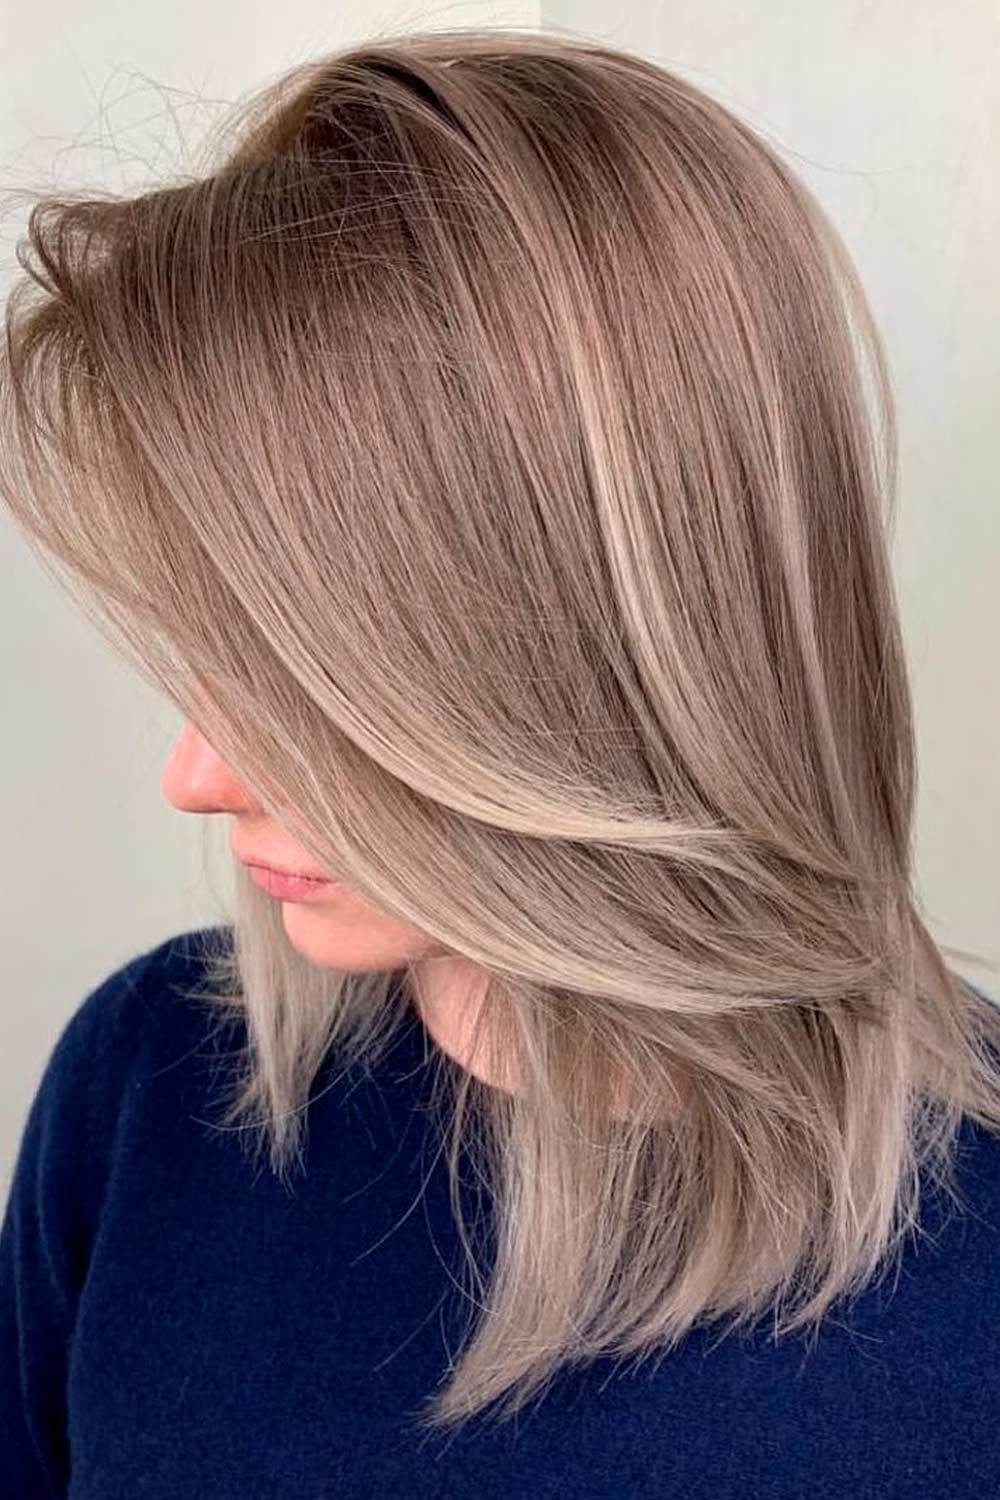 Natural Ash Brown Looks, how to tone brown hair to ash, ash light brown hair, ash brown balayage hair